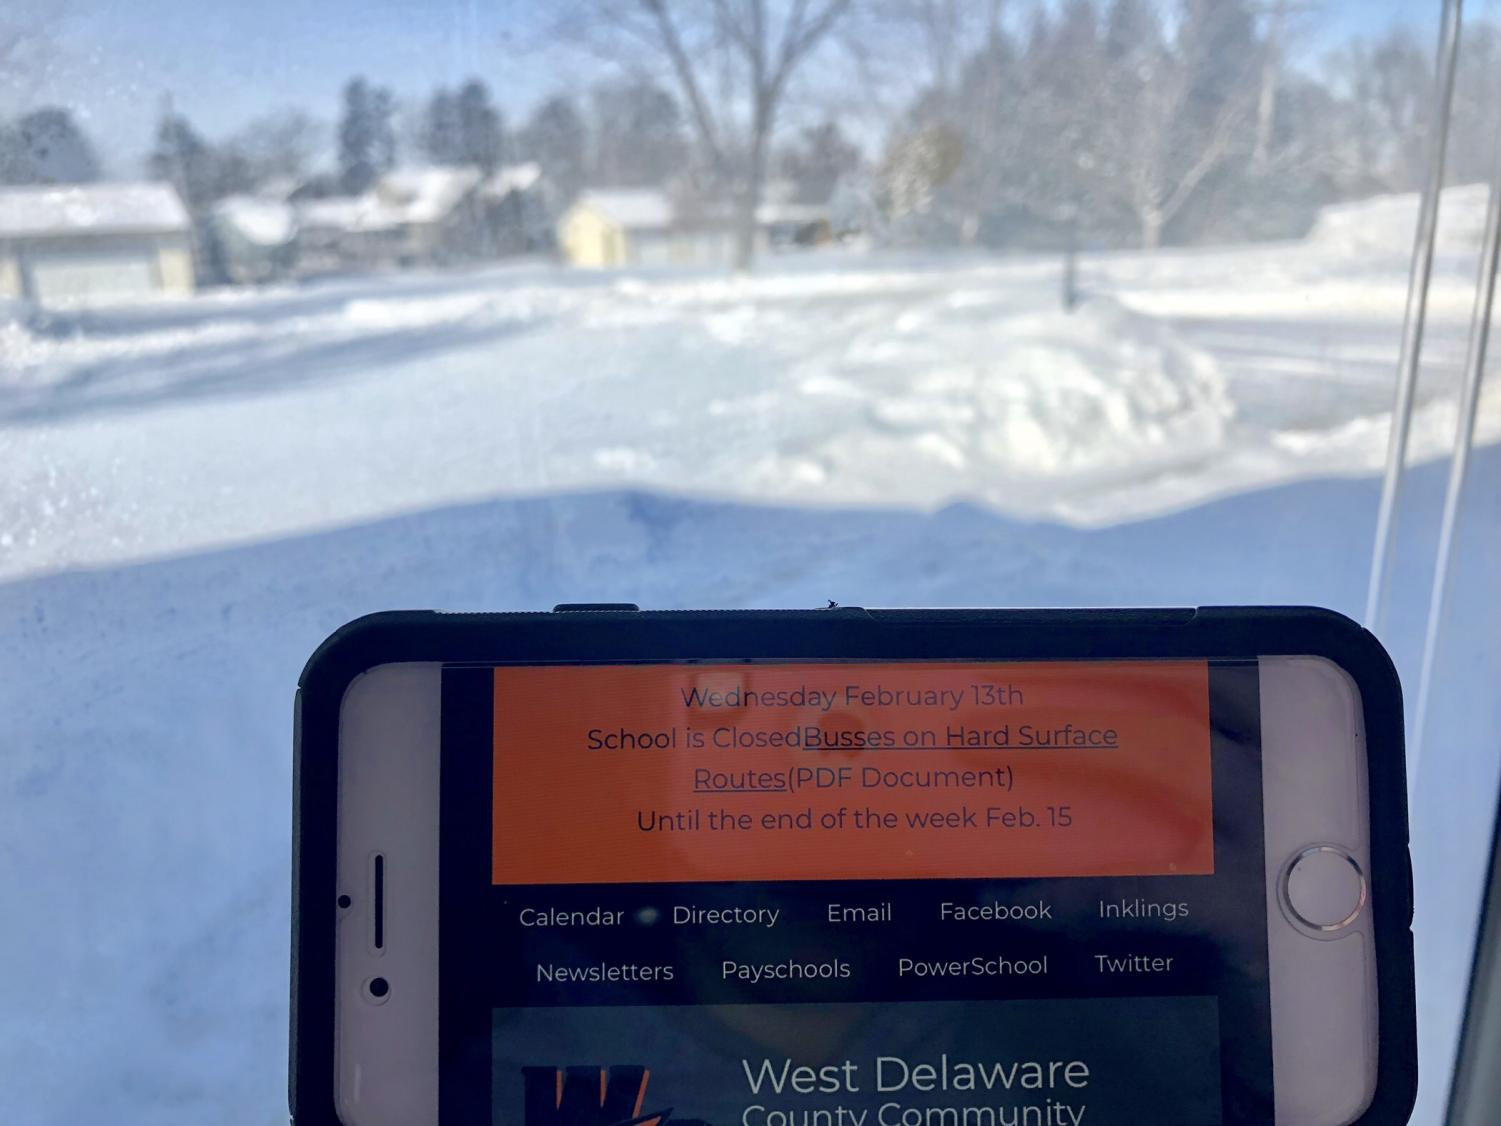 A phone displaying the message that school is closed Feb. 13, due to bad road conditions.